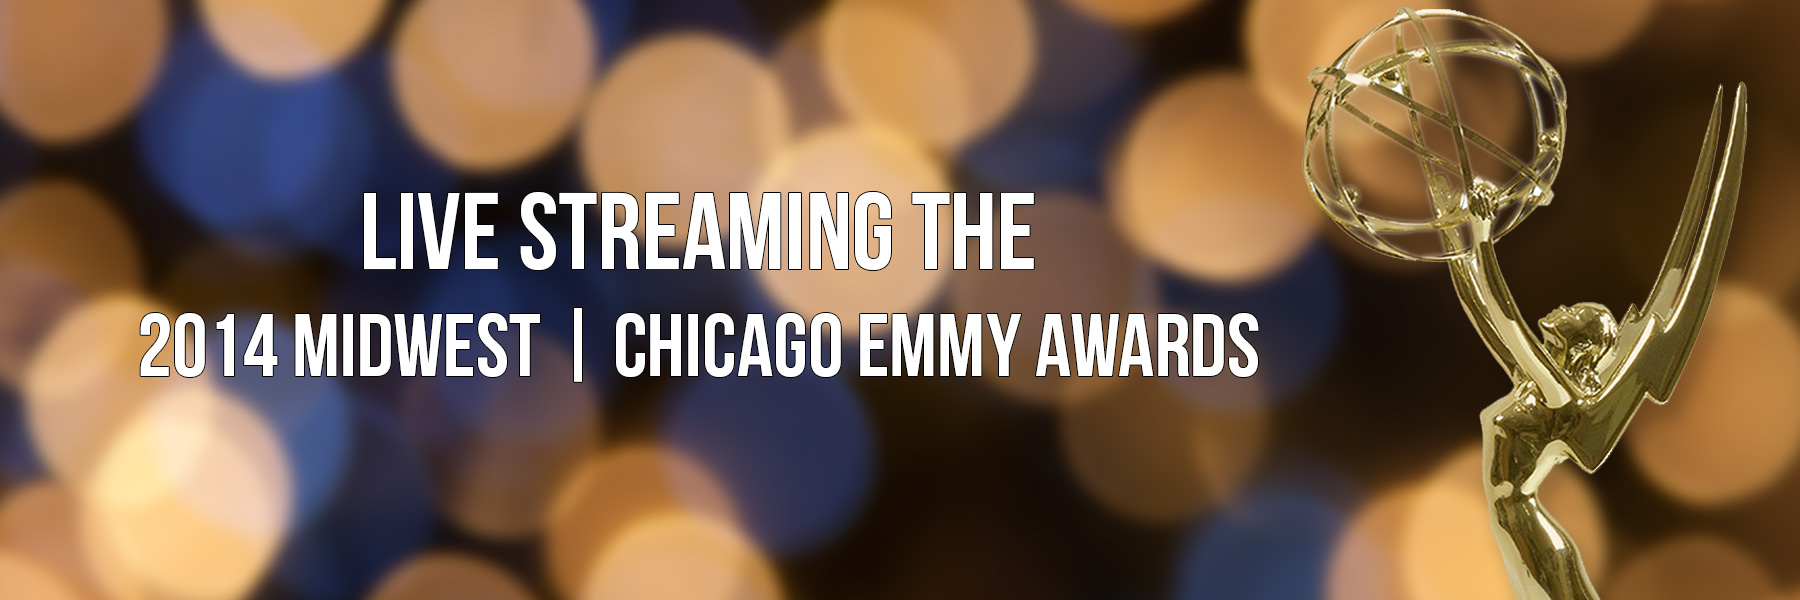 Live streaming the 2014 Midwest | Chicago Emmys